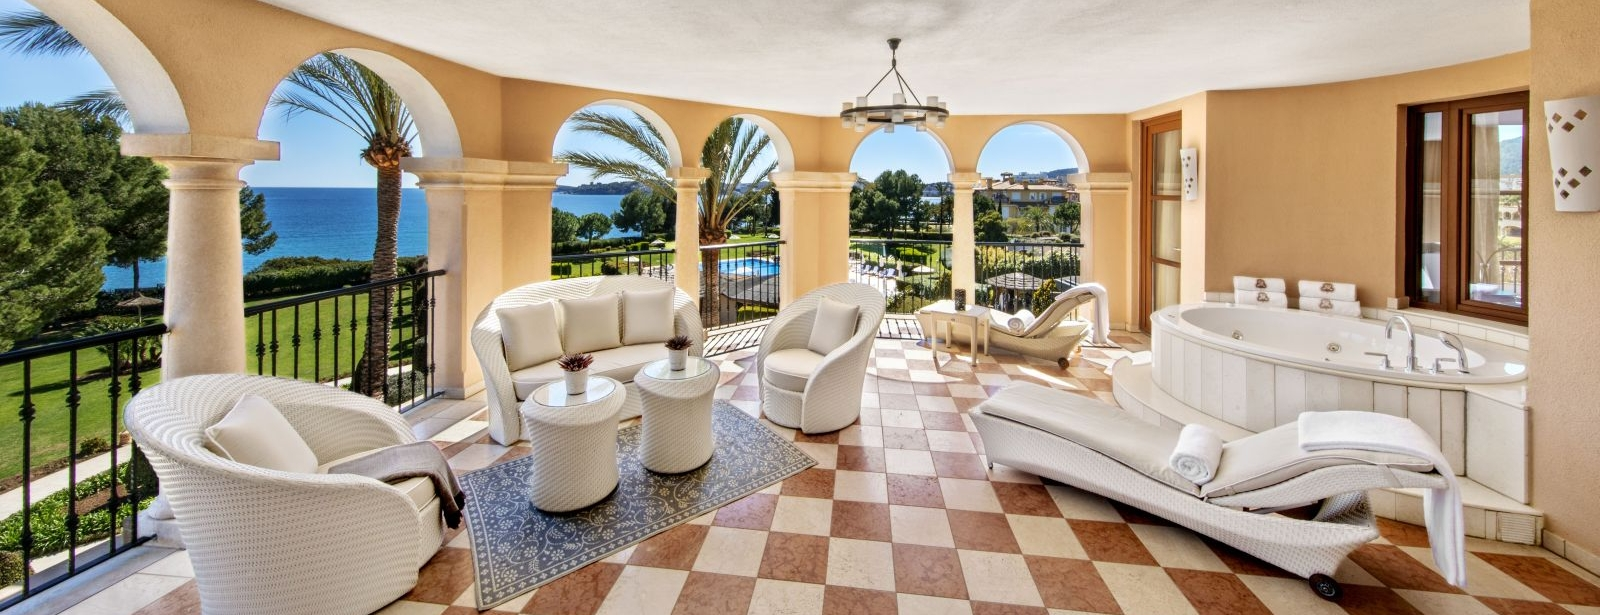 Newly refurbished Diamond Suite with private outdoor terrace at the St. Regis Mardavall Mallorca Resort